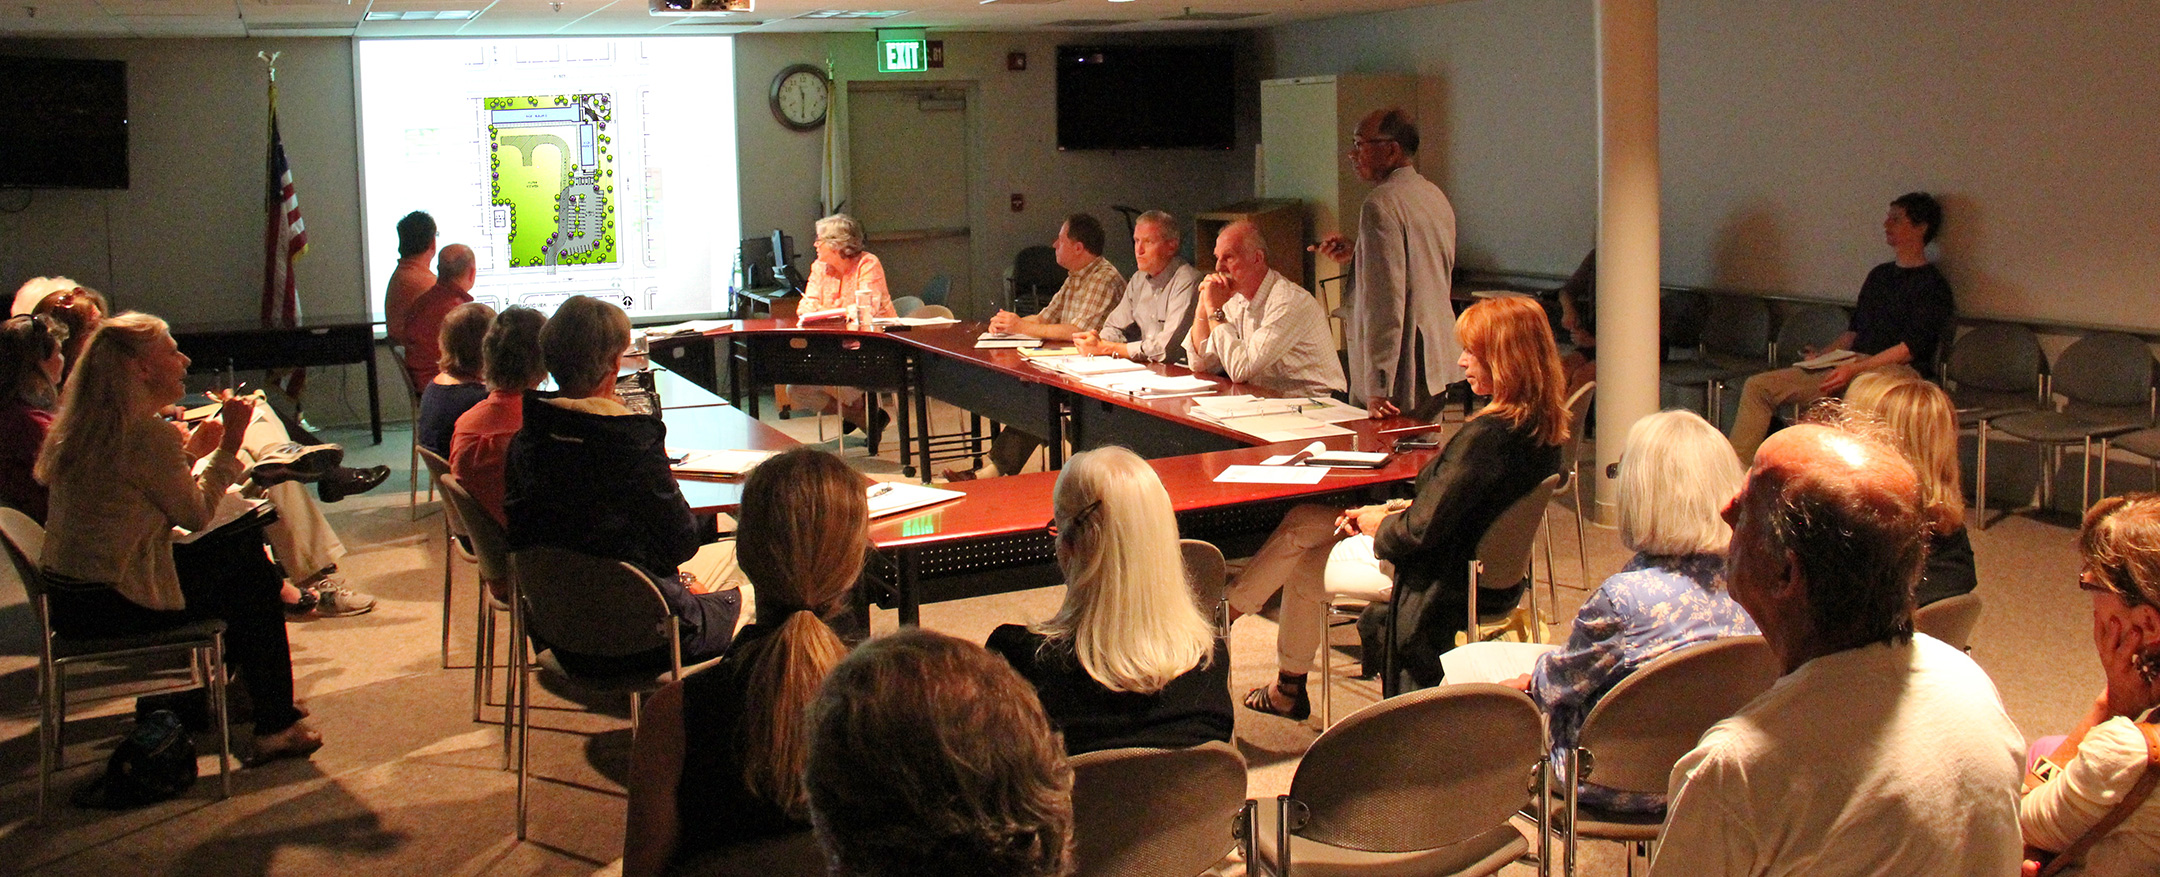 Architect Frisco White (standing, right) presents Westberg+White's preliminary architectural design report for Pacific View at the Activation Subcommittee meeting on June 29, 2015. Several ideas and changes were suggested by attendees, most of which White agreed to include in his final report.